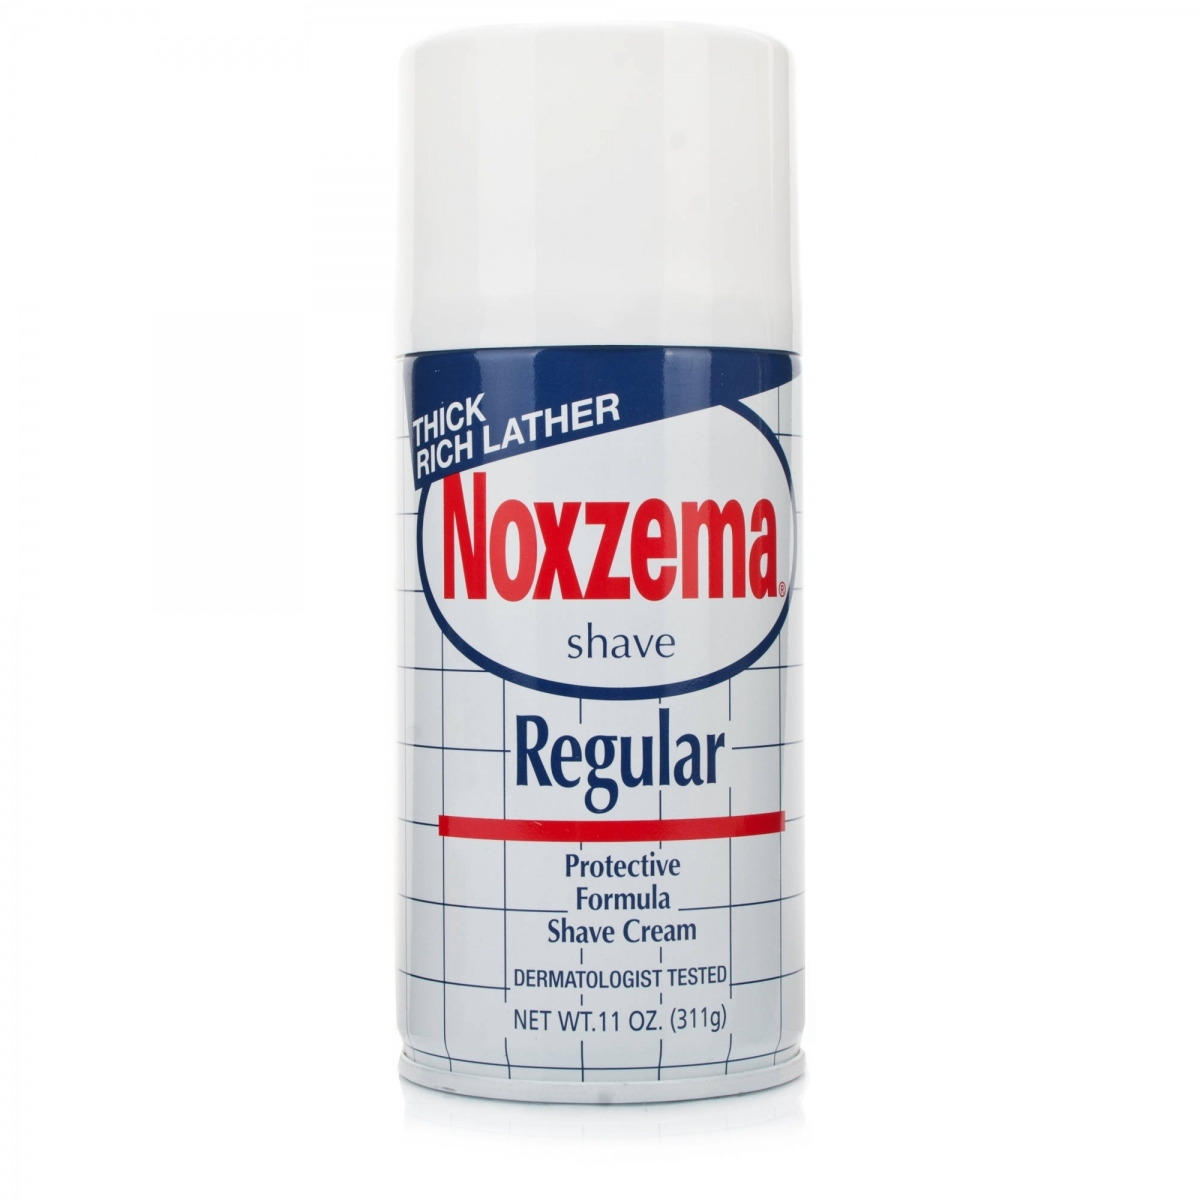 noxzema-schiuma-da-barba-300ml